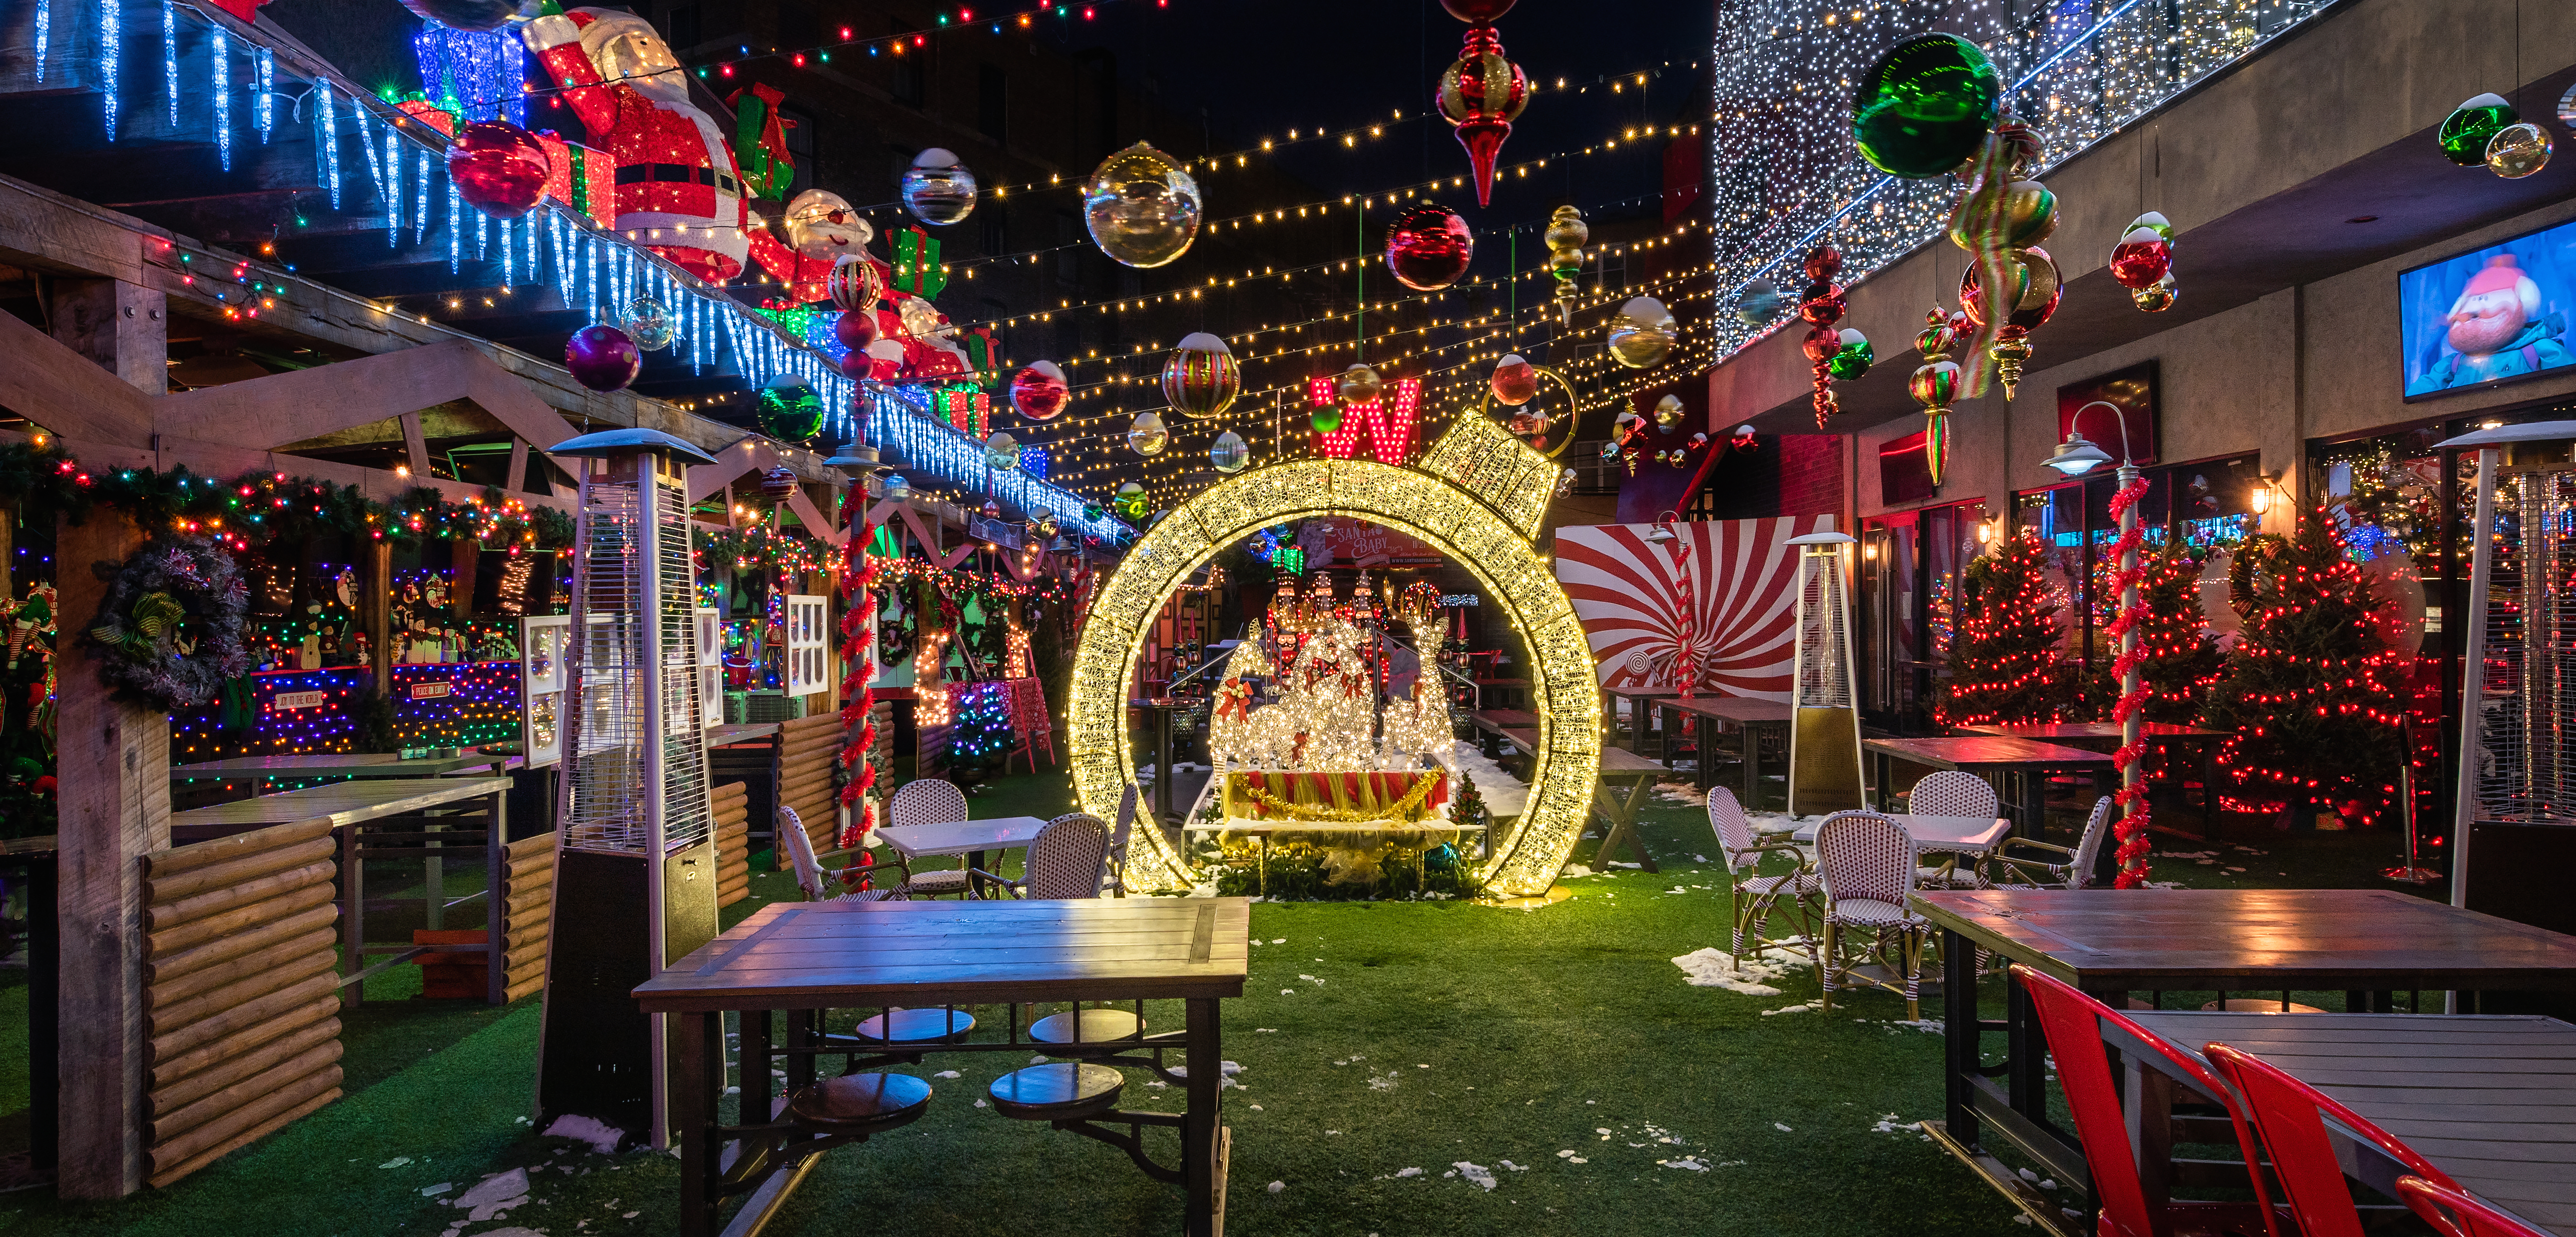 Popup Hotel Christmas Week 2021 California Chicago Holiday Pop Up Bars 2020 Christmas Bars Experiences Choose Chicago